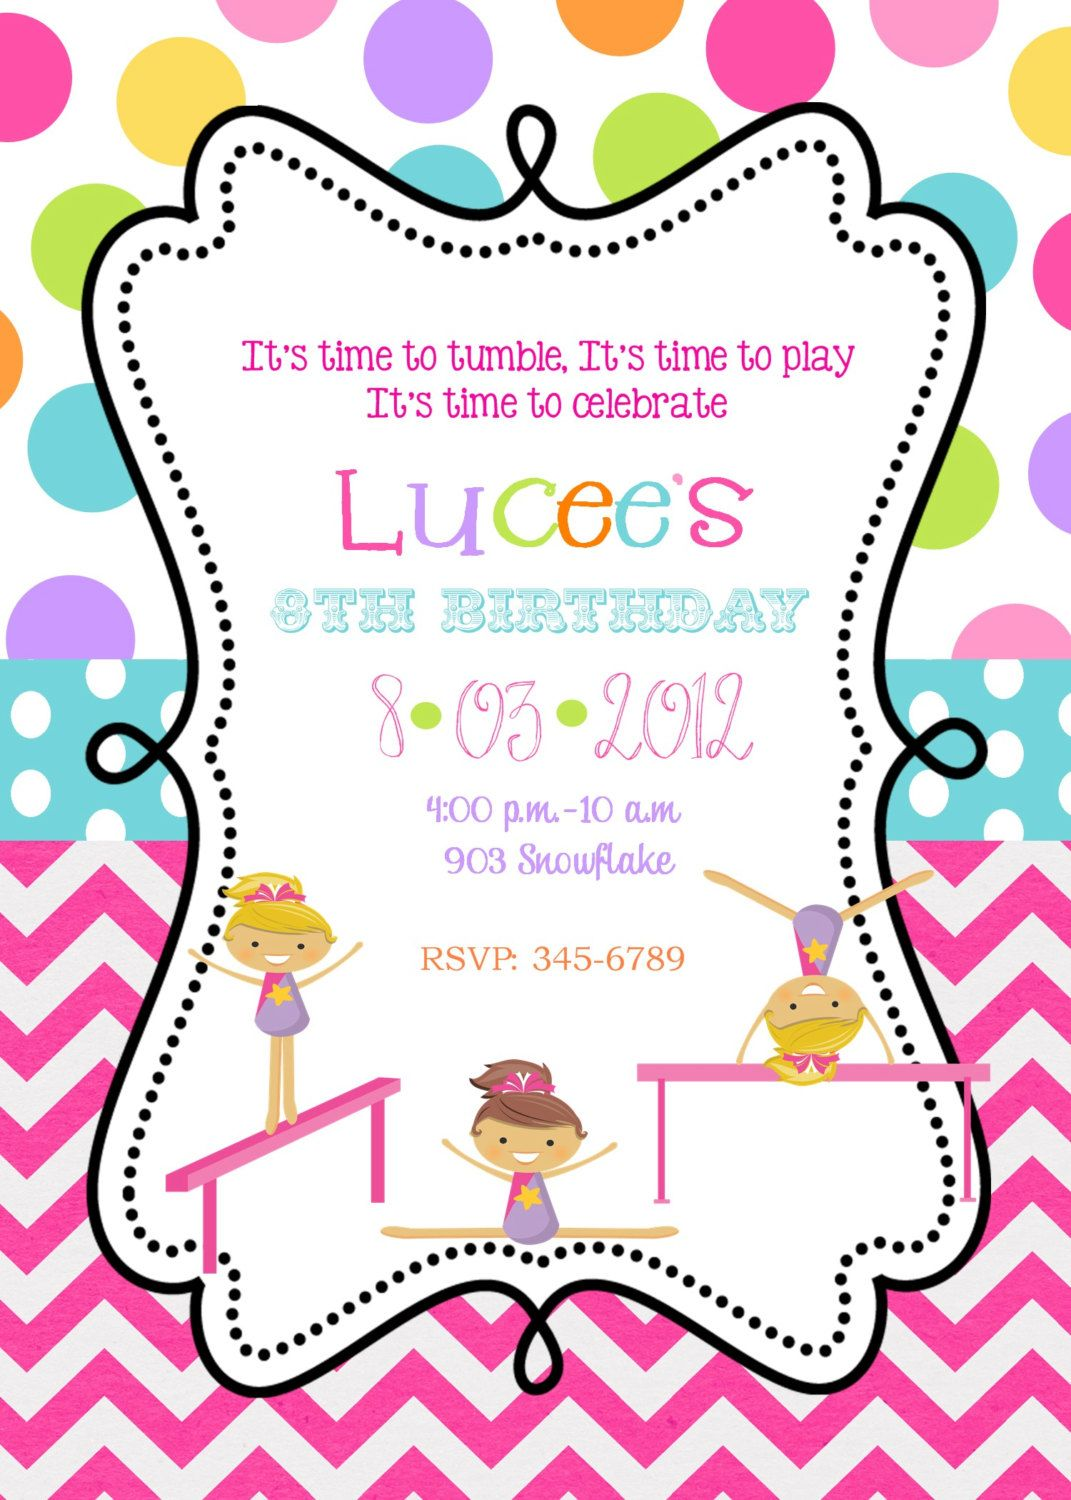 Gymnastics Birthday Party Invitations Printable Or Digital File By Noteablechic On Etsy